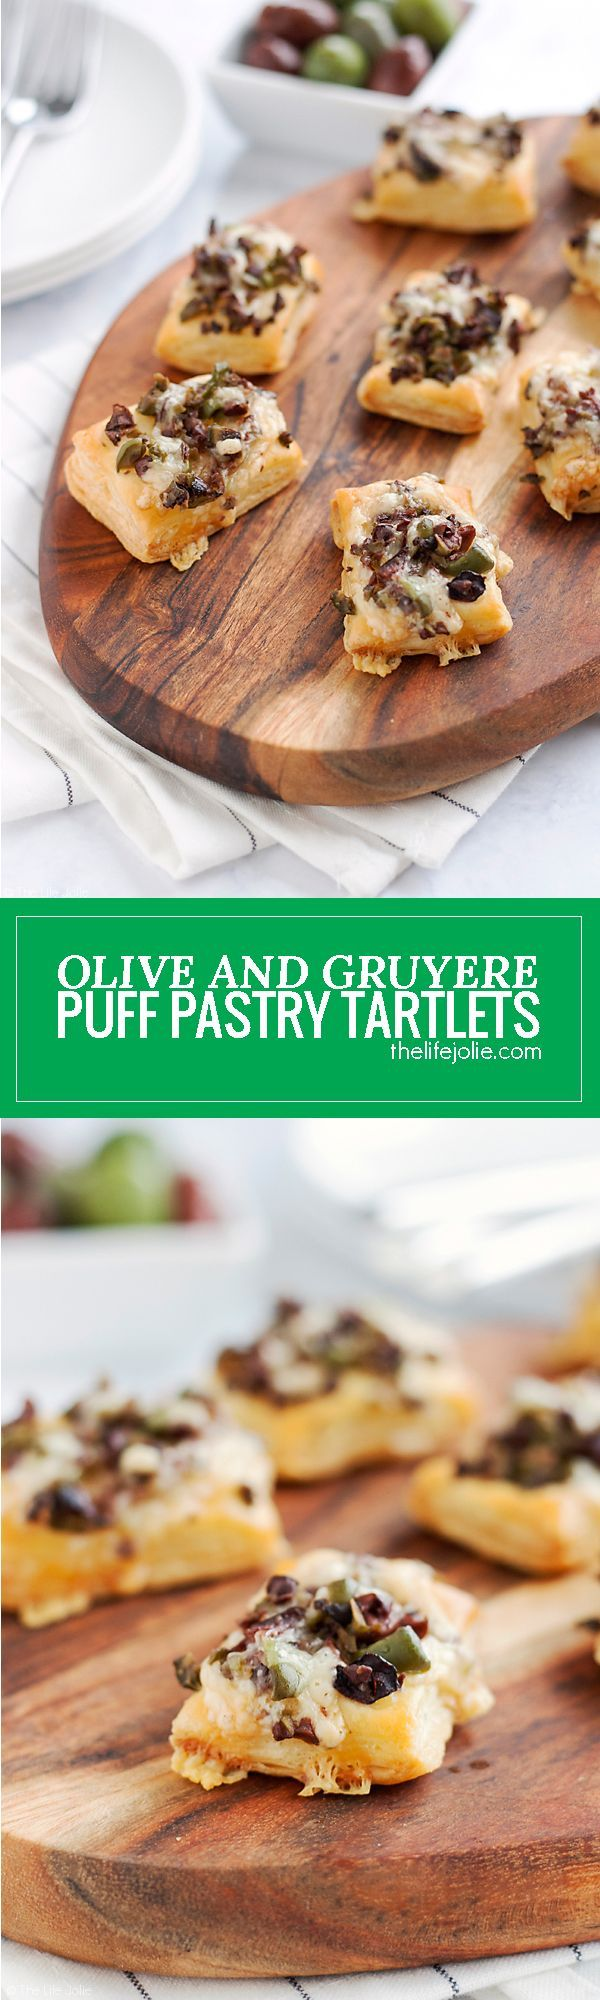 This Olive and Gruyere Puff Pastry Tartlets recipe is one of my new favorite easy appetizers to throw together! Just four simple ingredients (including frozen puff pastry dough, olives and cheese) and they come together quickly for the holidays or any par